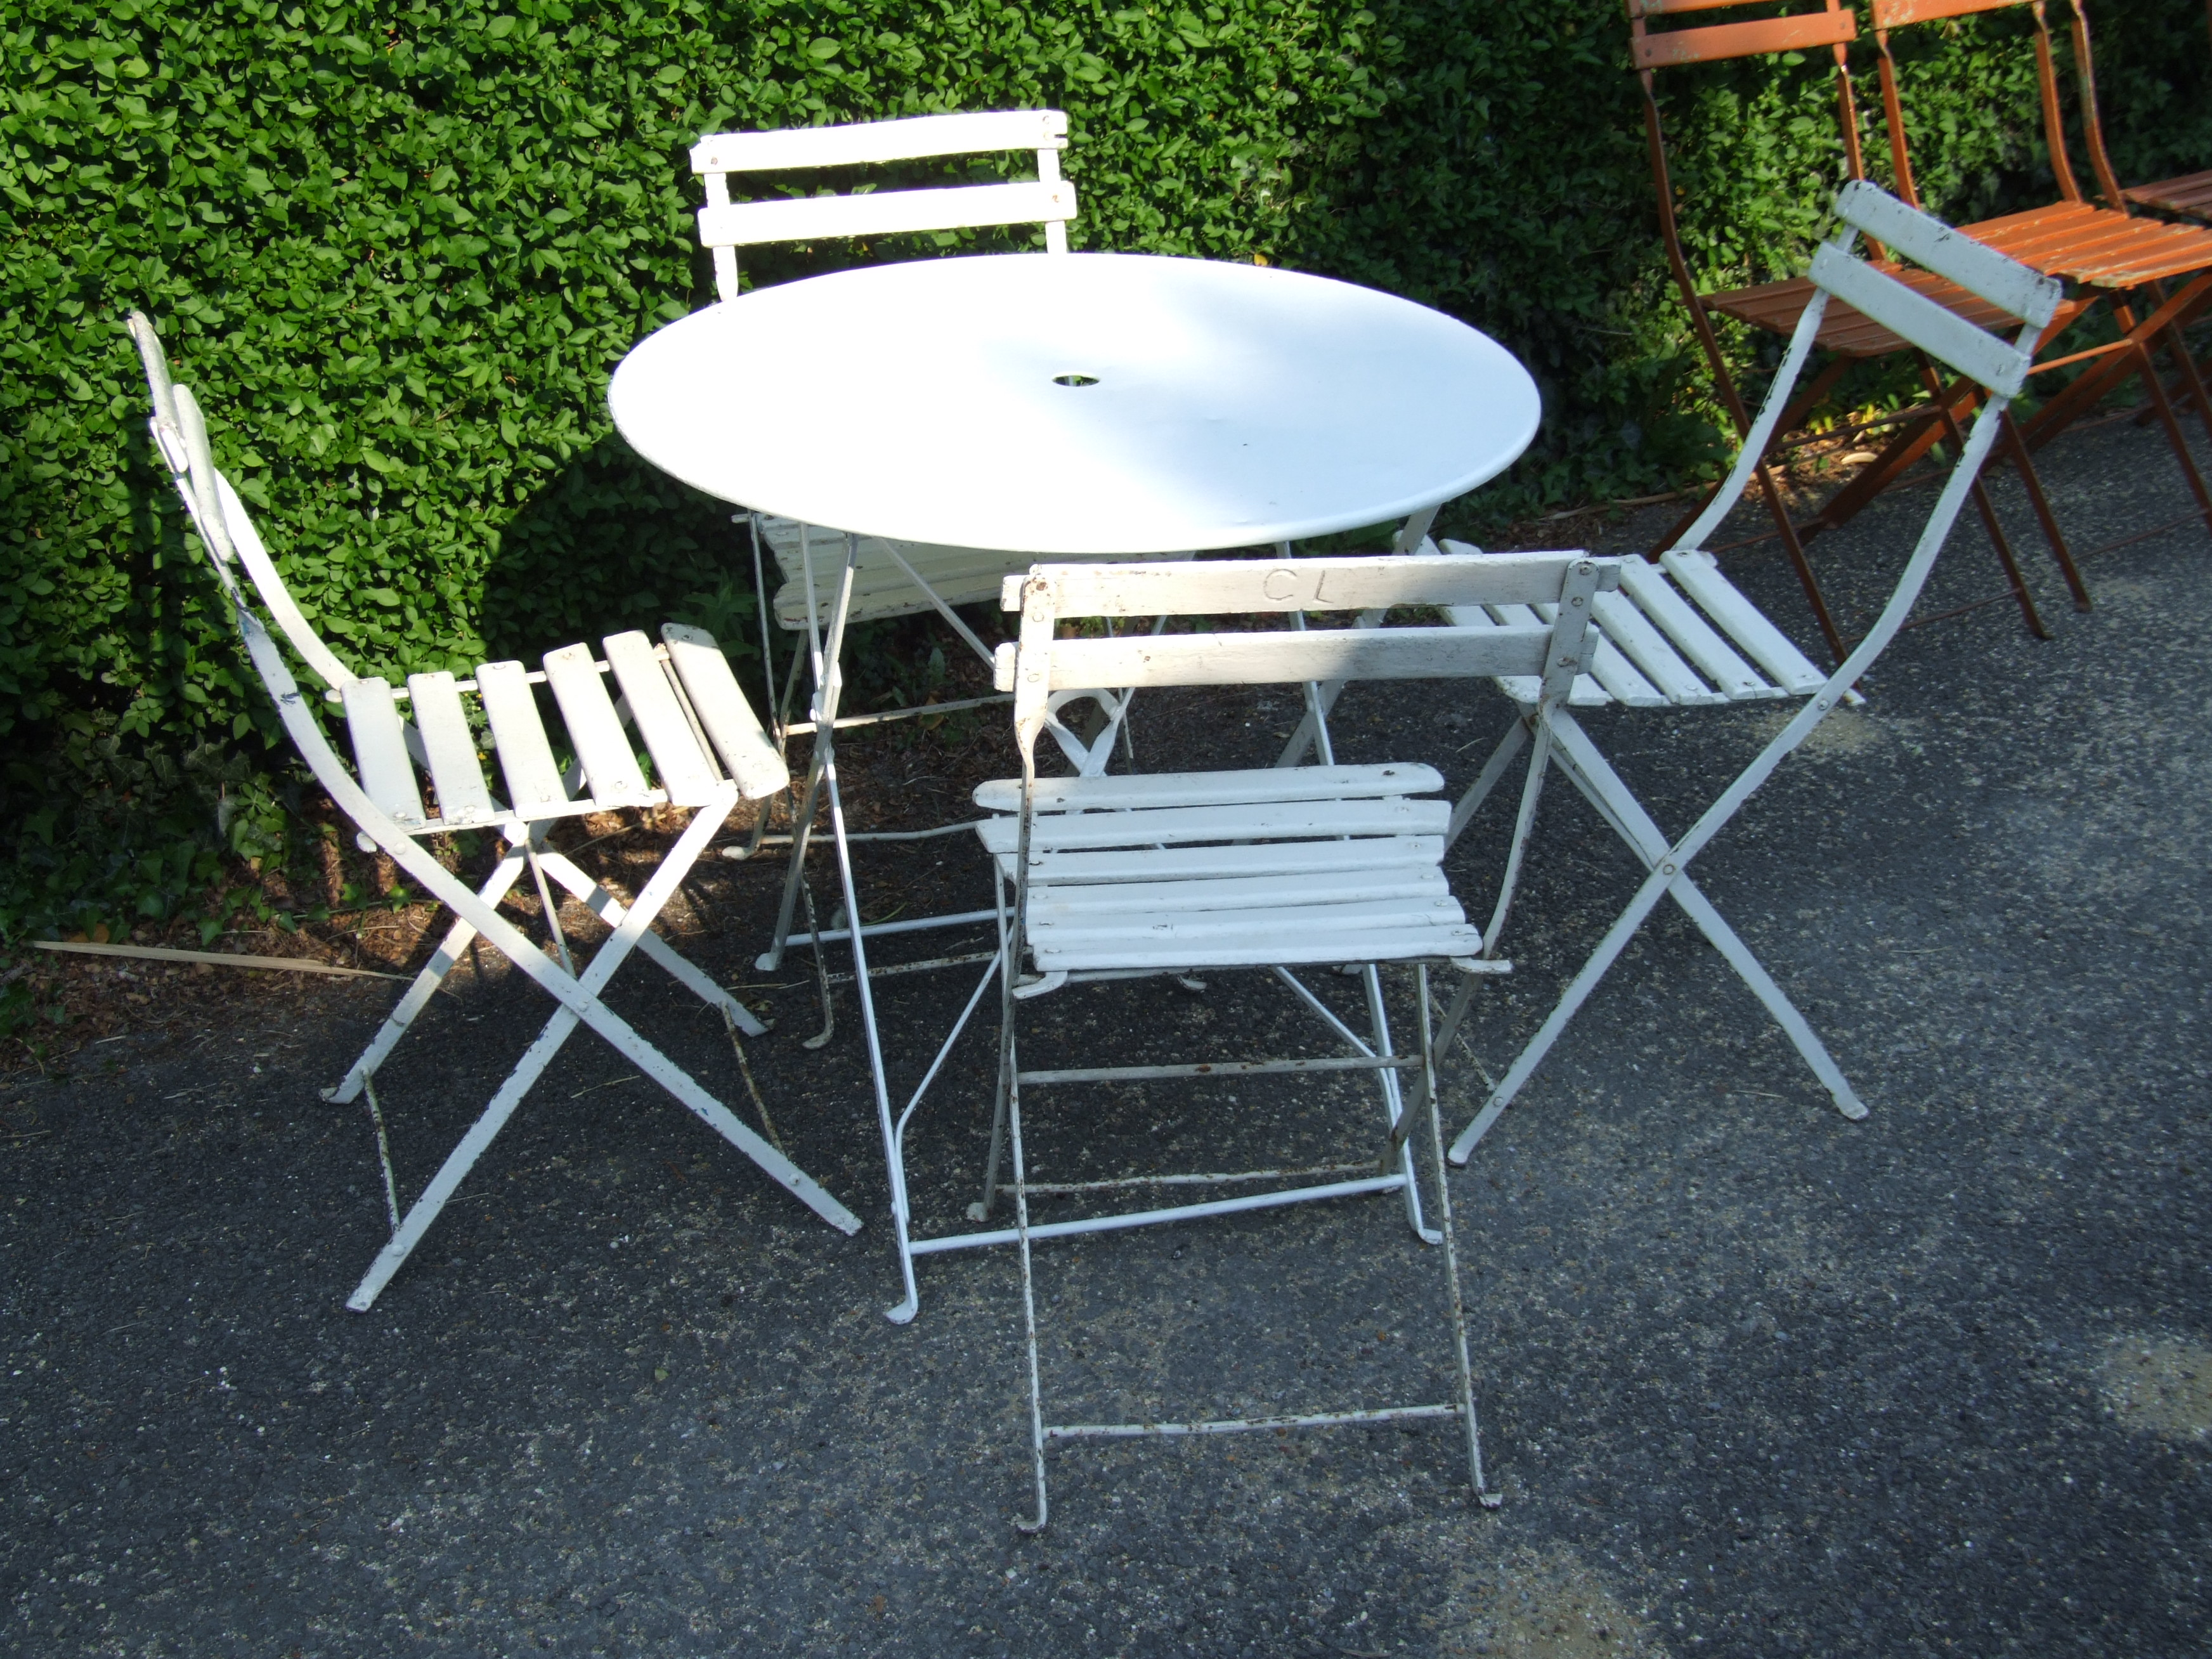 Vintage cafe table and chairs -  G097 Vintage French Round Folding Garden Cafe Table